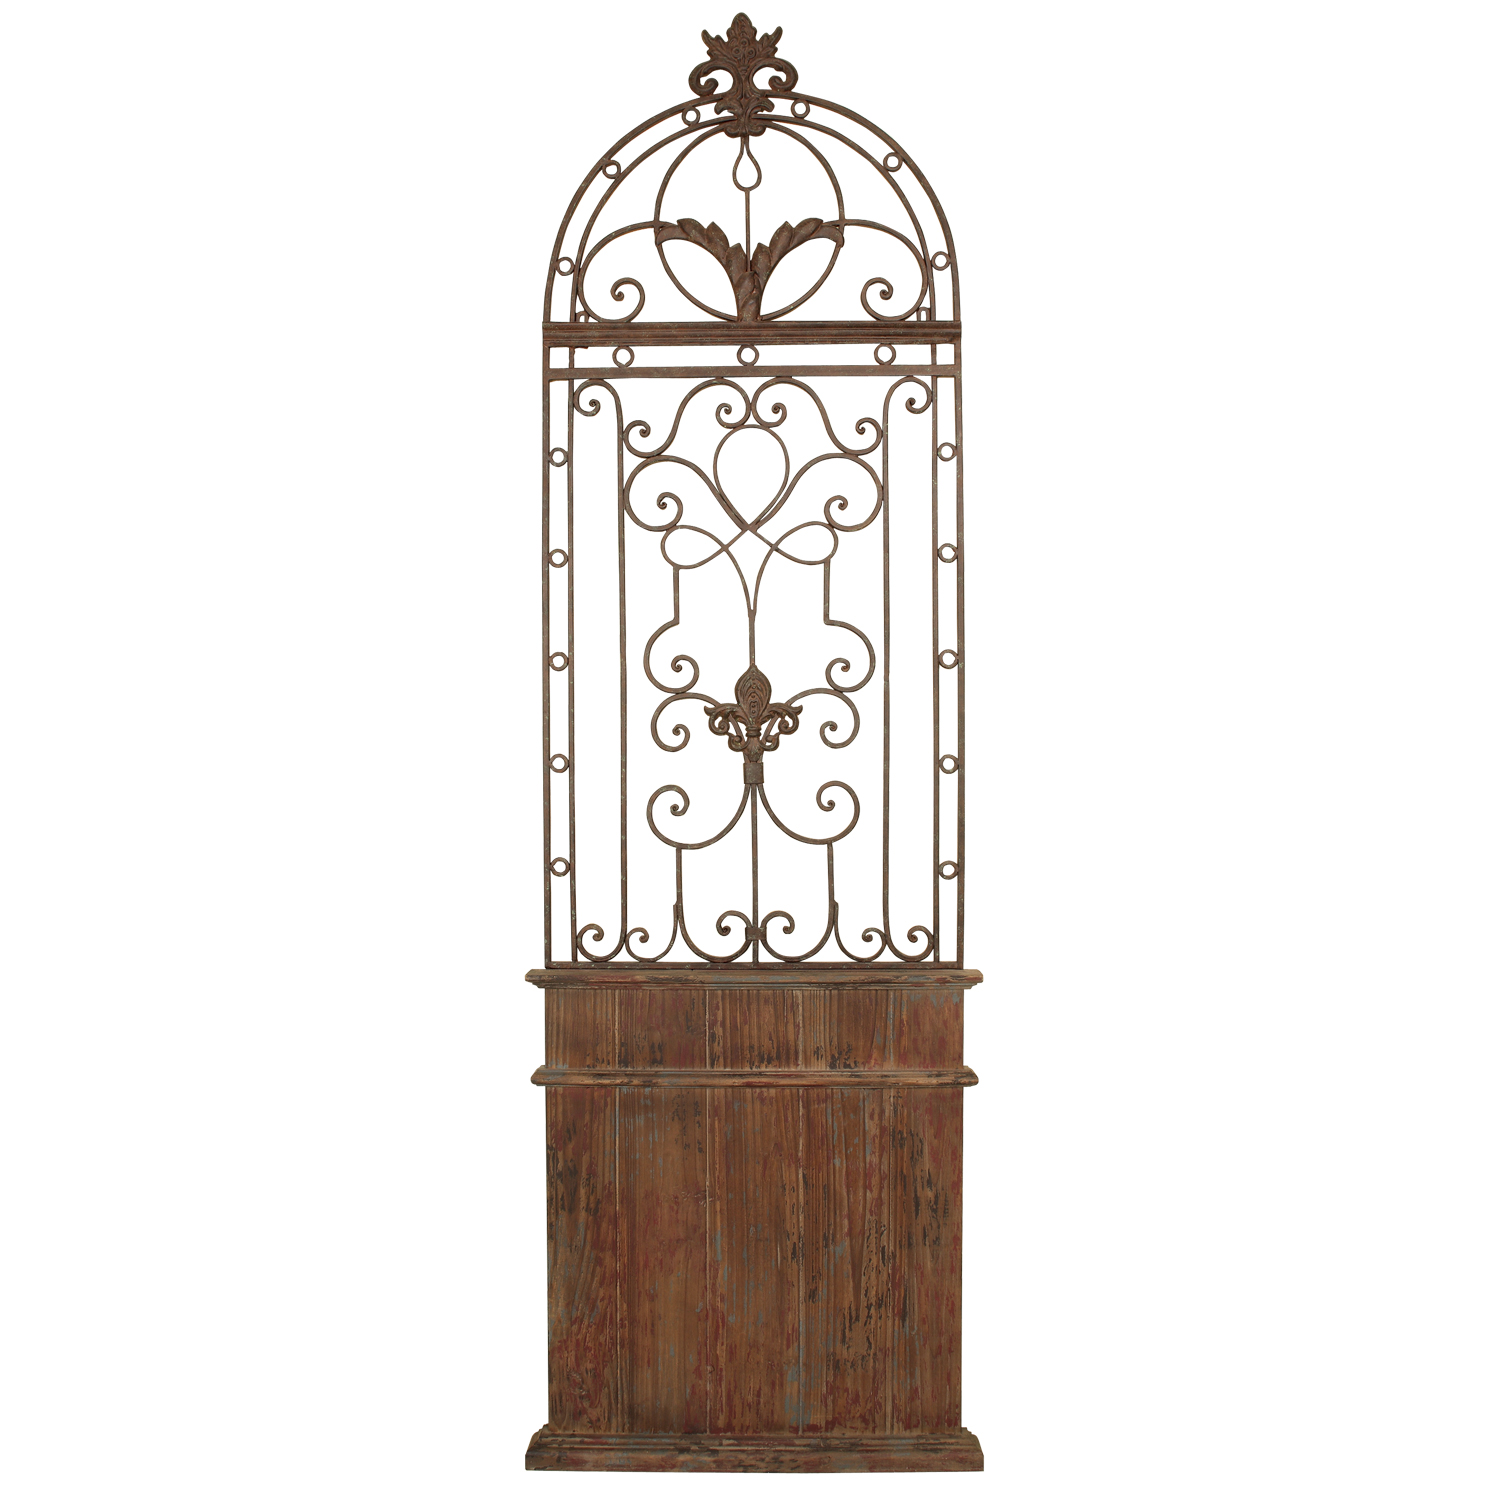 Wooden Gate Wall Decor : Wooden door wall d?cor mario contract lighting